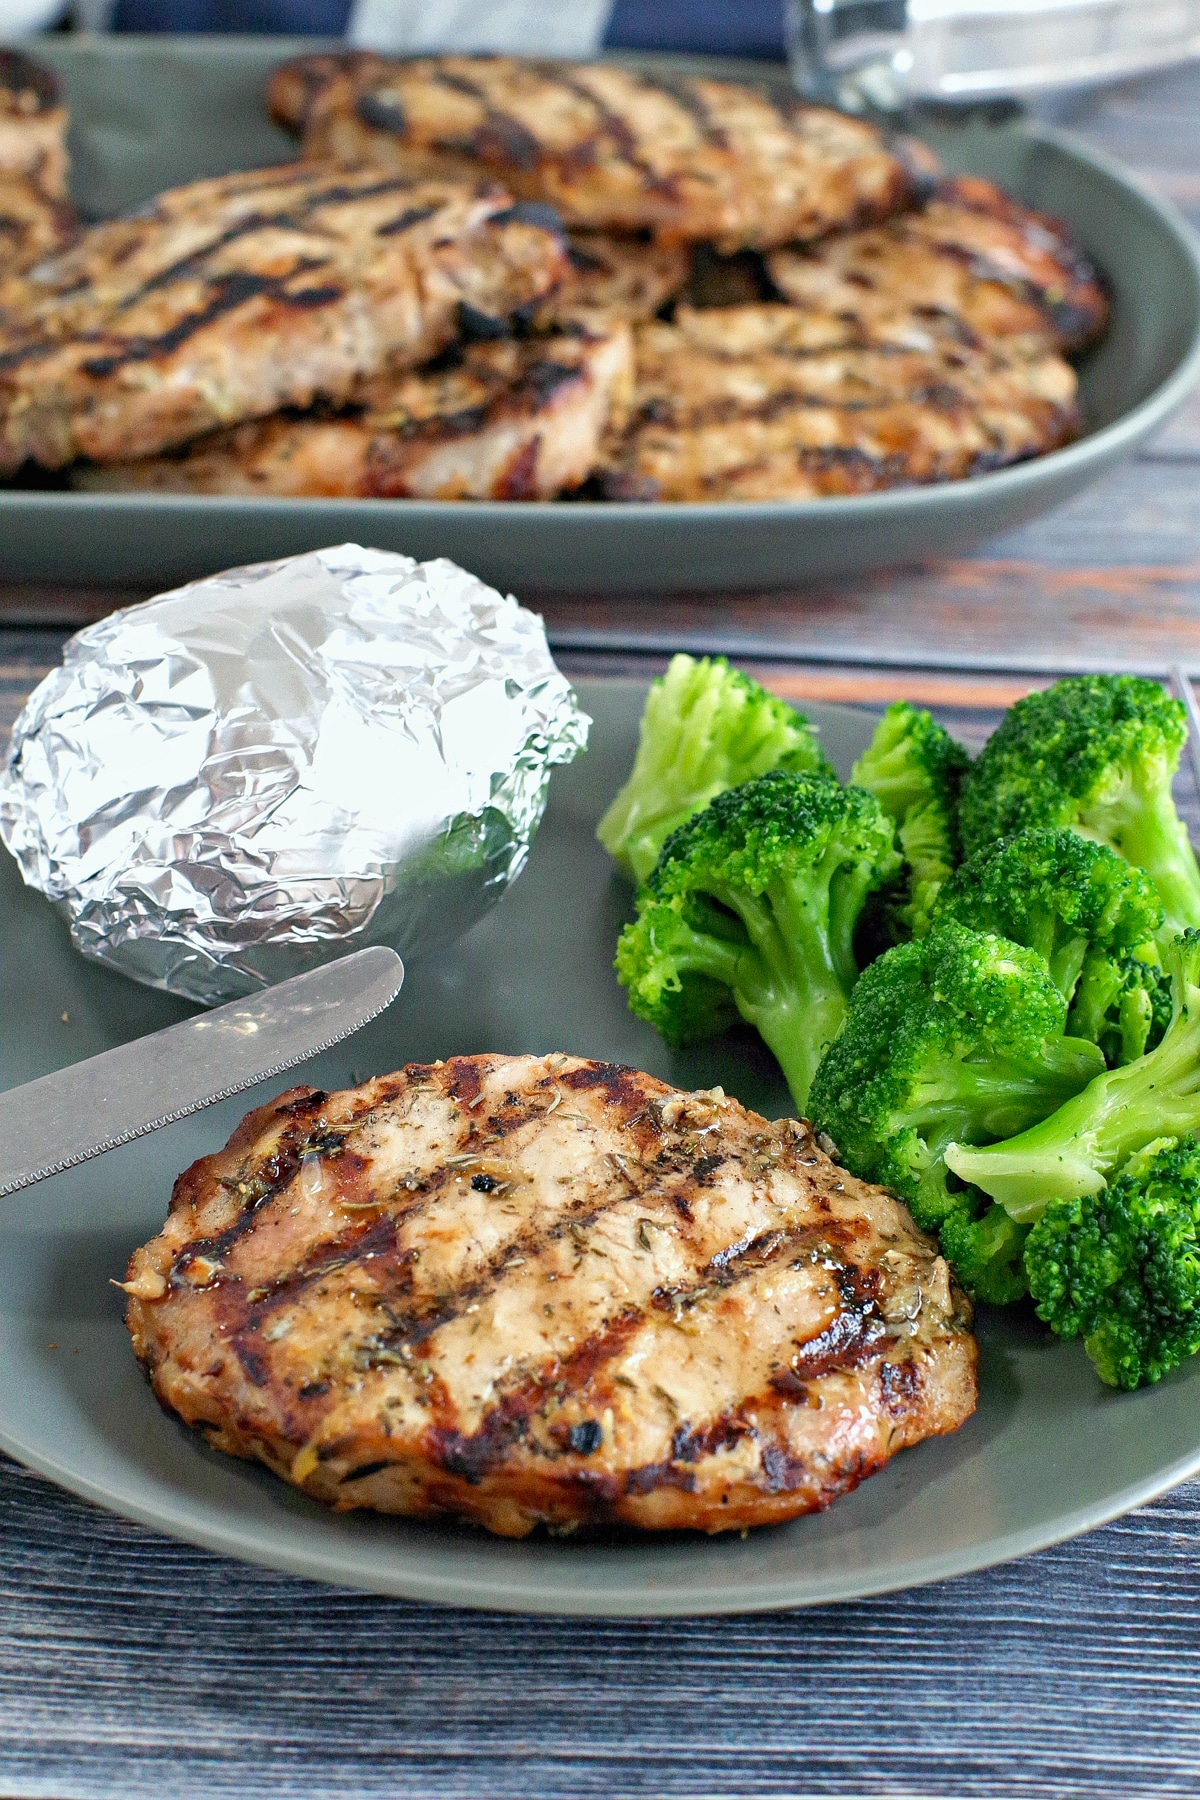 Maple lemon pork on a plate with broccoli and baked potato in foil with platter of pork in the backgroun